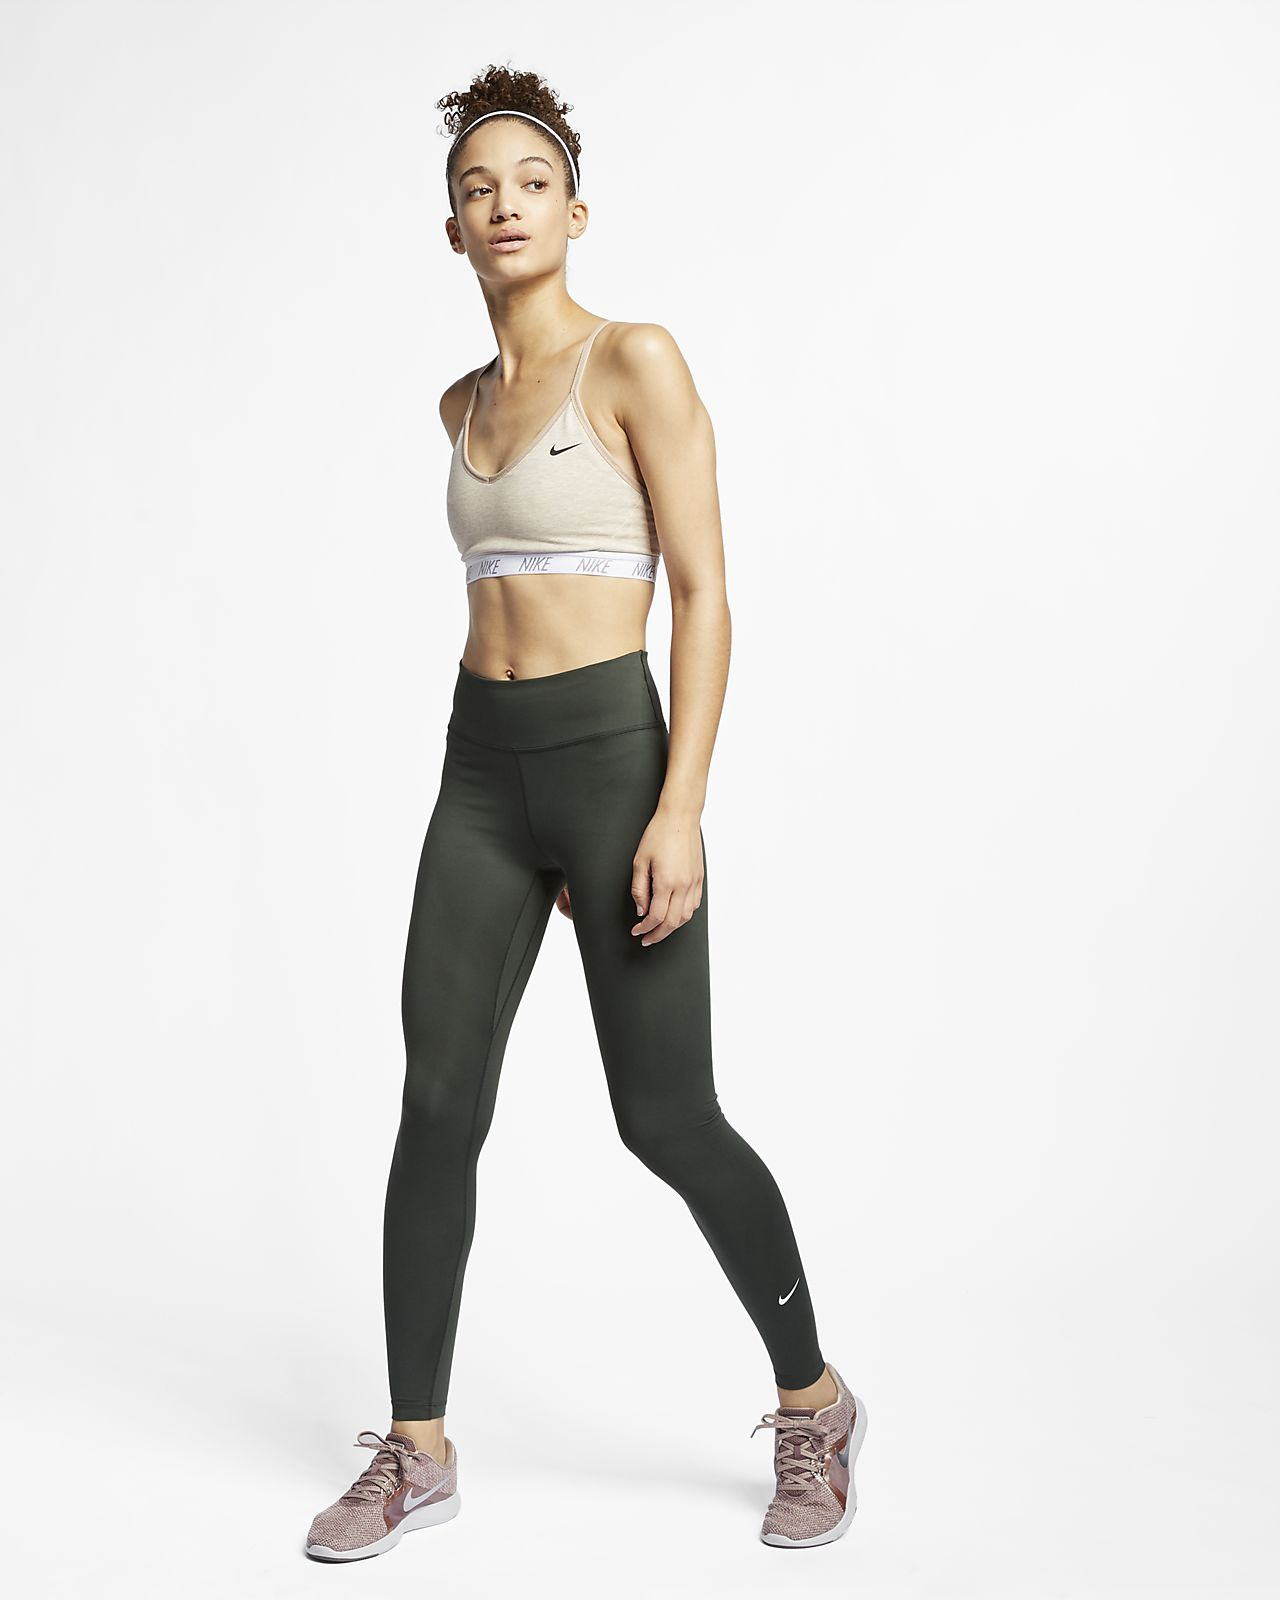 72835568d5fc6 Low Resolution Nike One Women's Tights Nike One Women's Tights